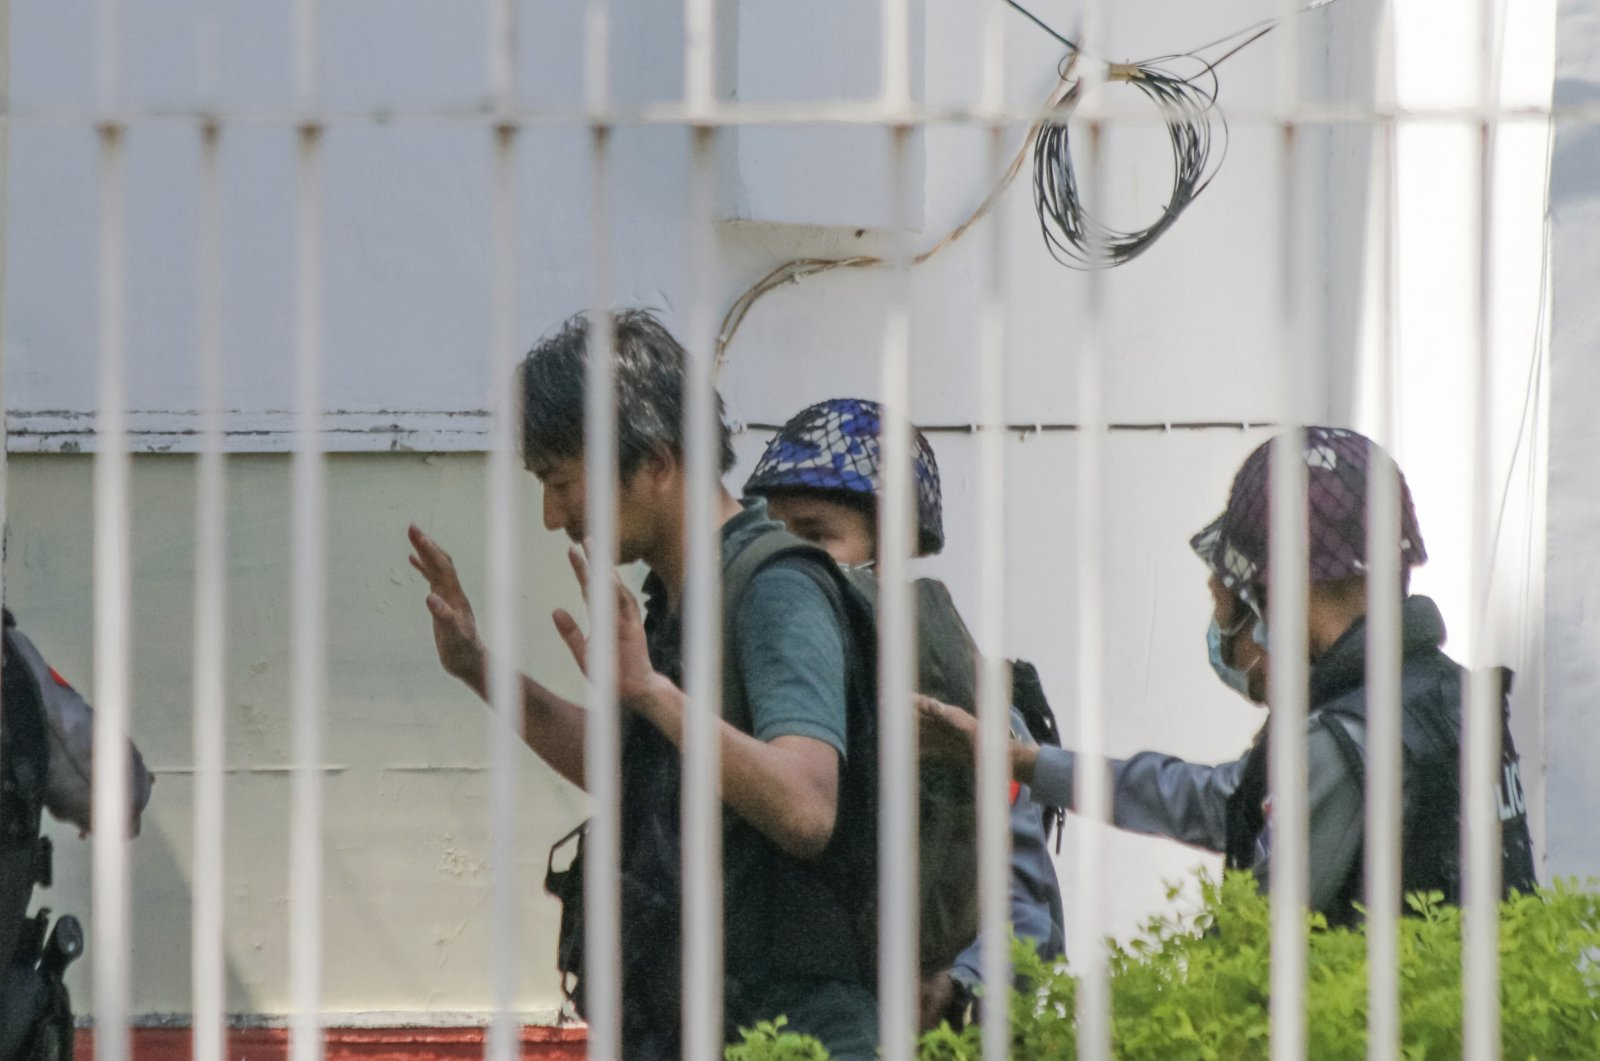 Japanese journalist Yuki Kitazumi raises his hands as he is escorted by police upon arrival at the Myaynigone police station in Sanchaung township in Yangon, Myanmar, Feb. 26, 2021. (AP Photo)